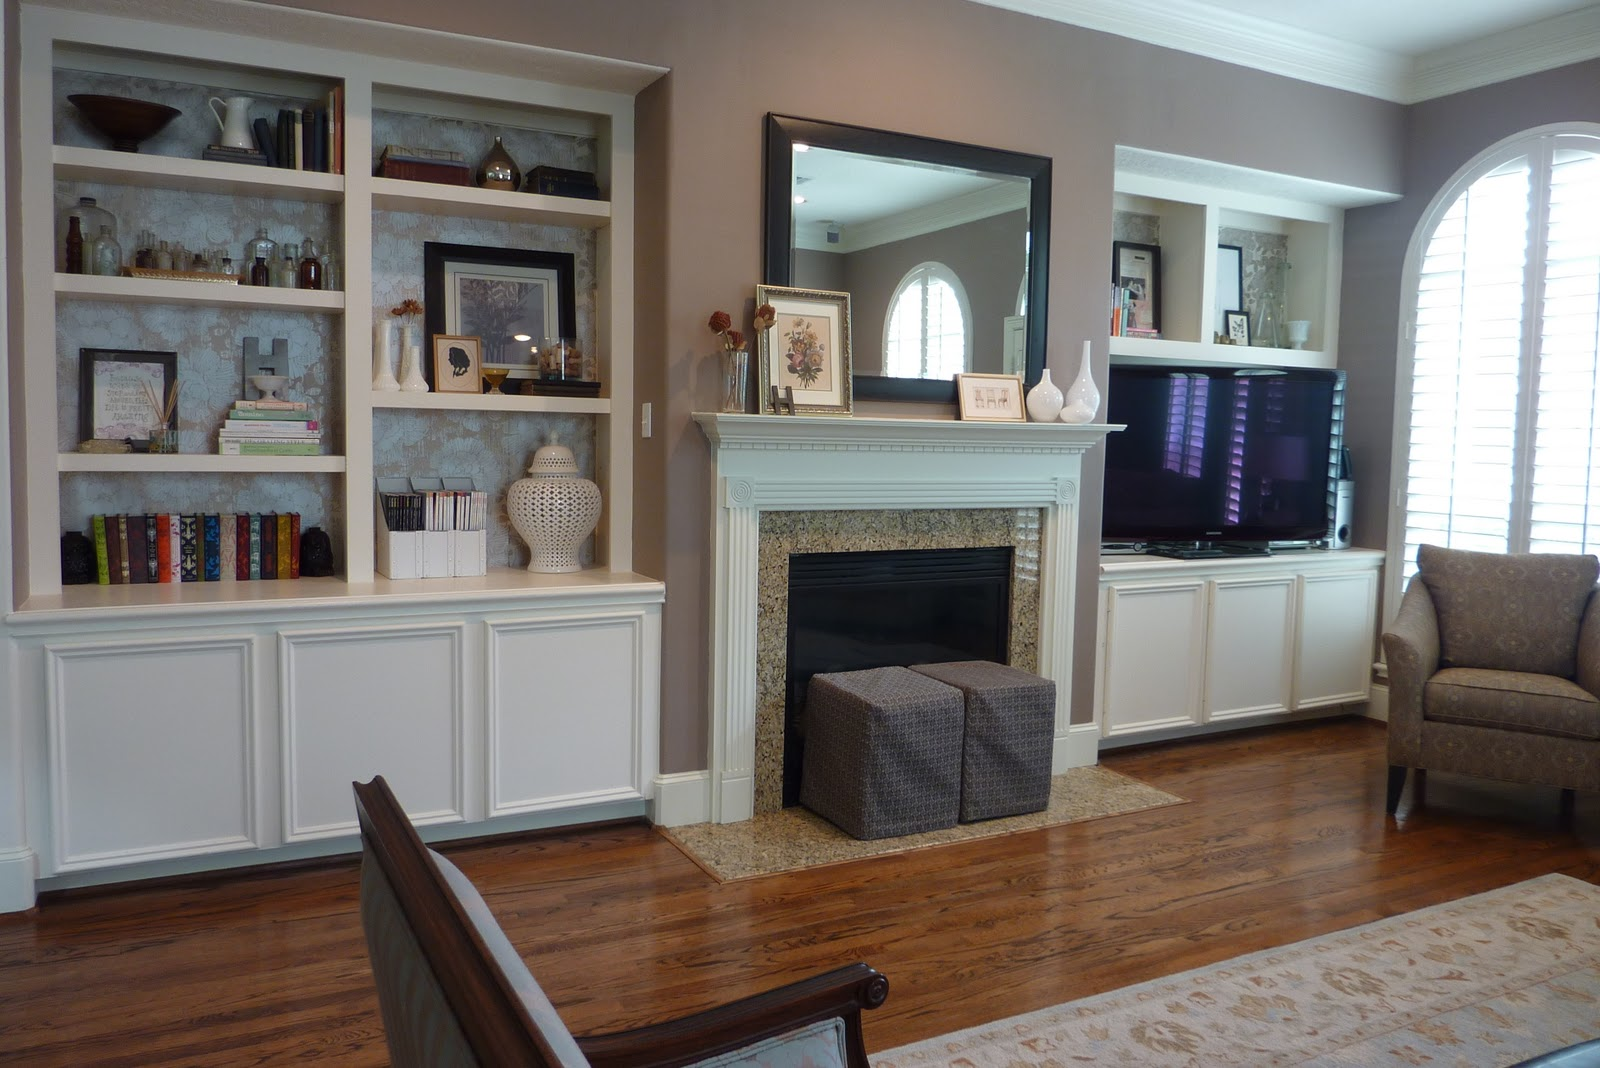 Name 5 things house tour living room for Things to put on shelves in living room